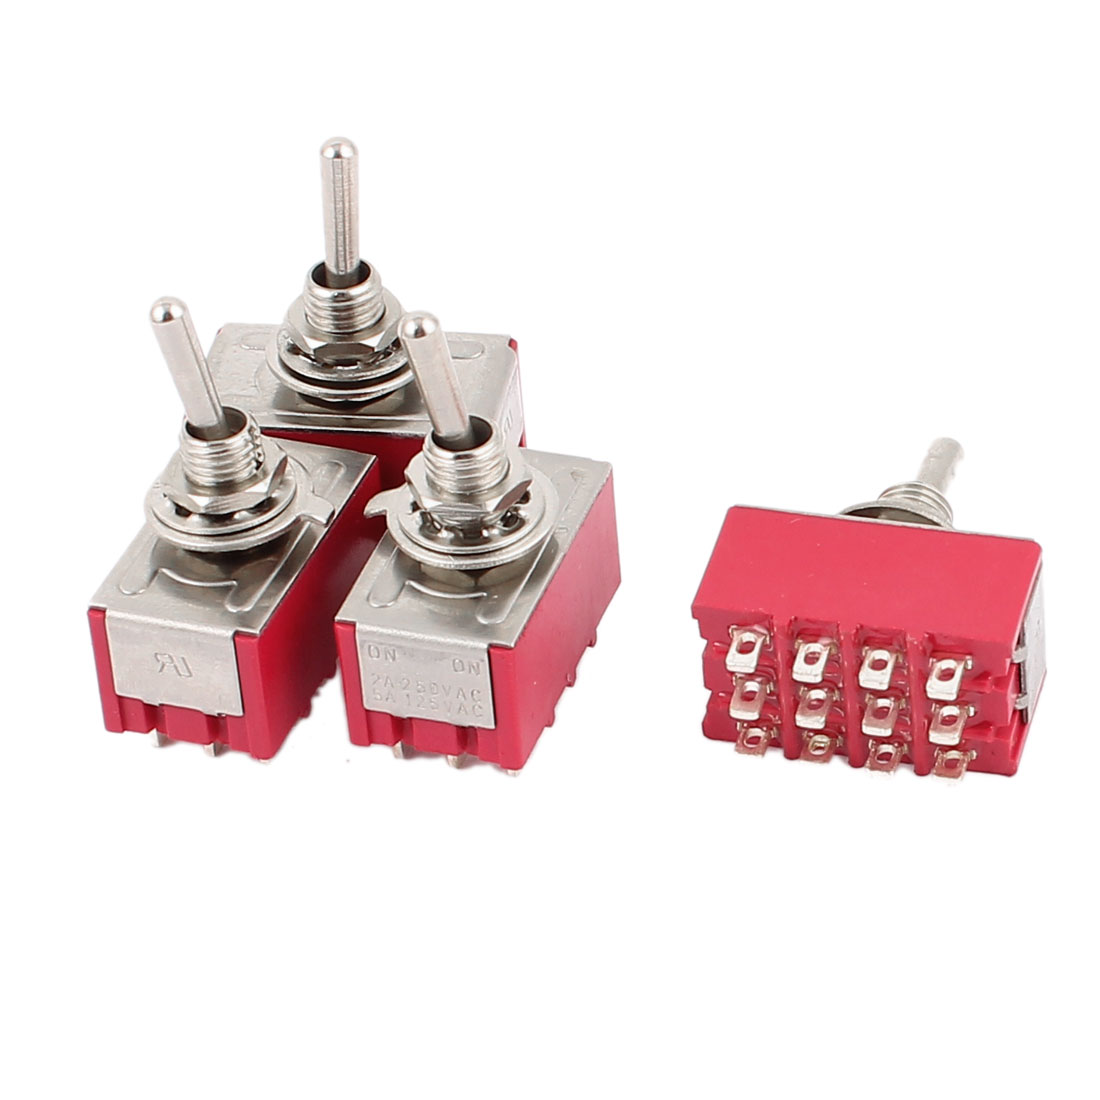 AC 250V/2A 125V/5A 12-Pin On/On 2 Position SPDT Toggle Switch 4 Pcs Red